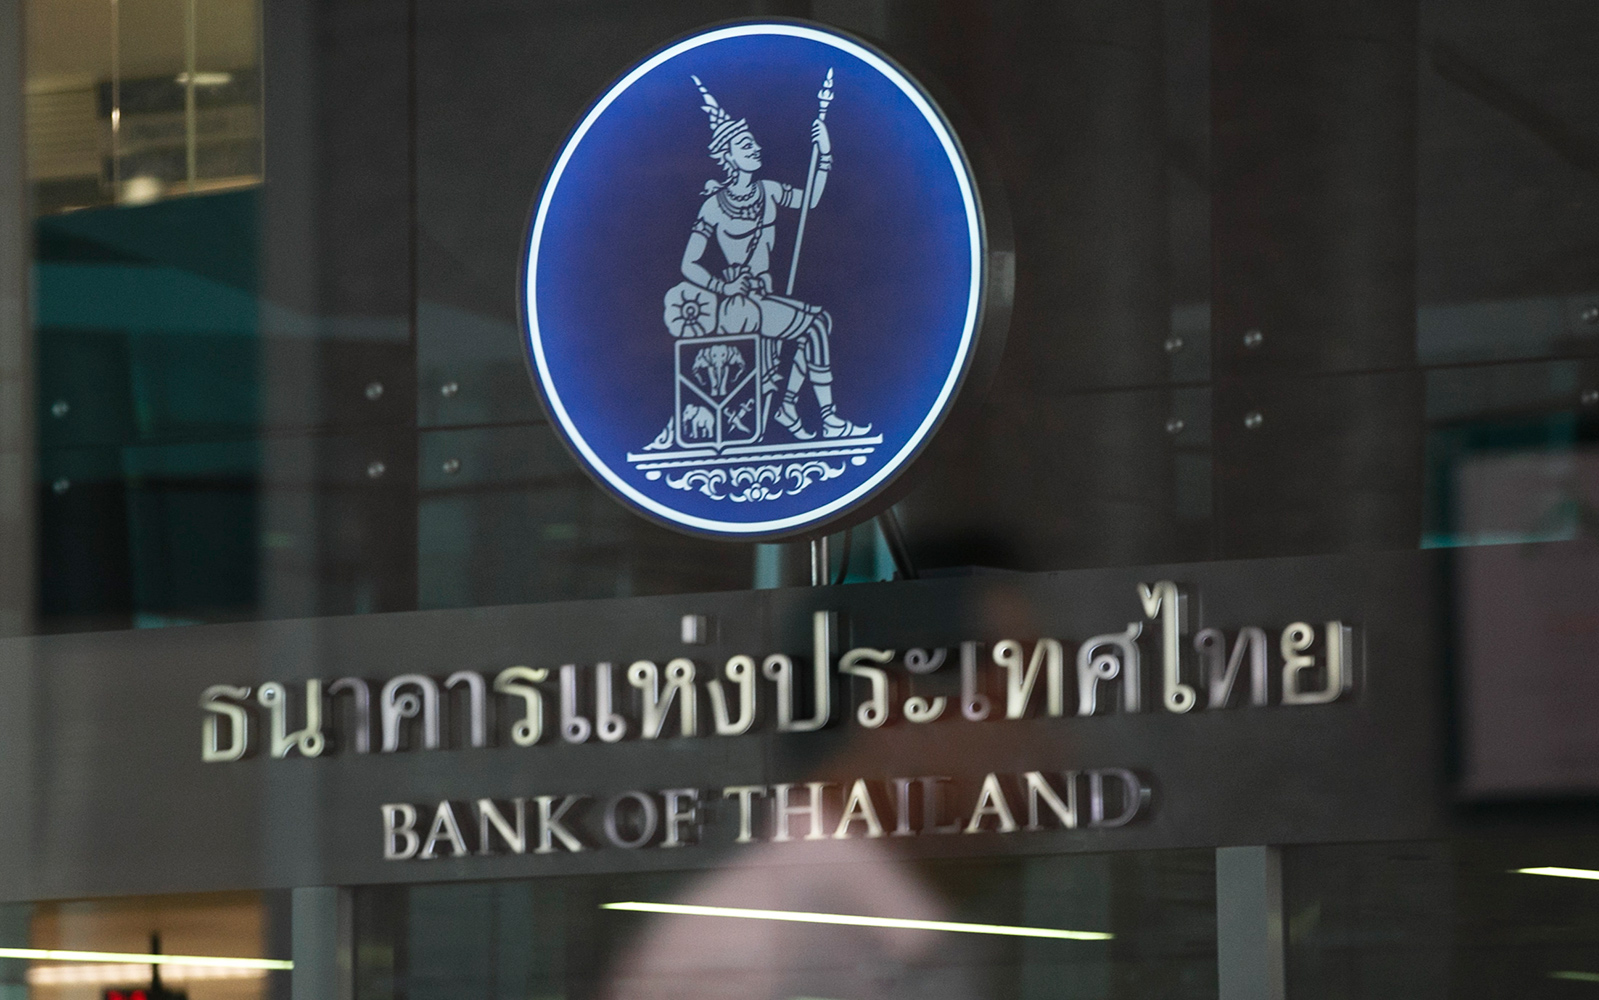 The Bank of Thailand plans to let banks adopt biometric technology to verify identity when opening deposit accounts by the third quarter this year. (Bangkok Post file photo)